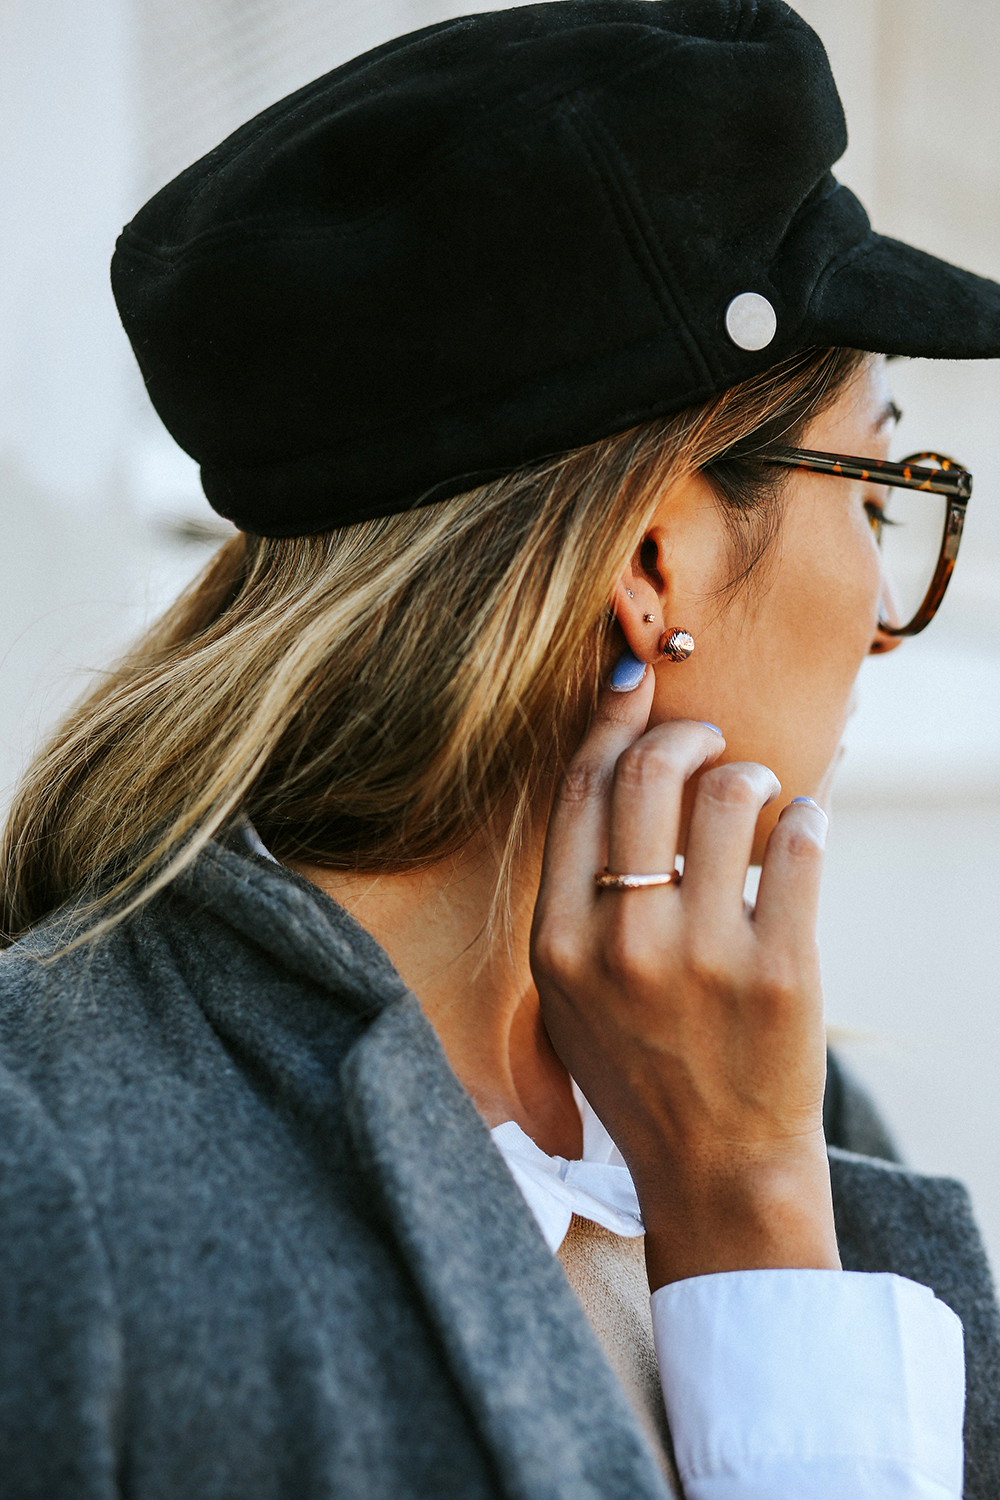 michael hill jewelry, michael hill, jewelry, accessories, melrodstyle, ootd, outfit, look, style, fashion, street style, fall style, melrodstyle, street style, mexican blogger, latina blogger, hispanic blogger, la blogger, whittier blogger, stud earrings, ring, rose gold,